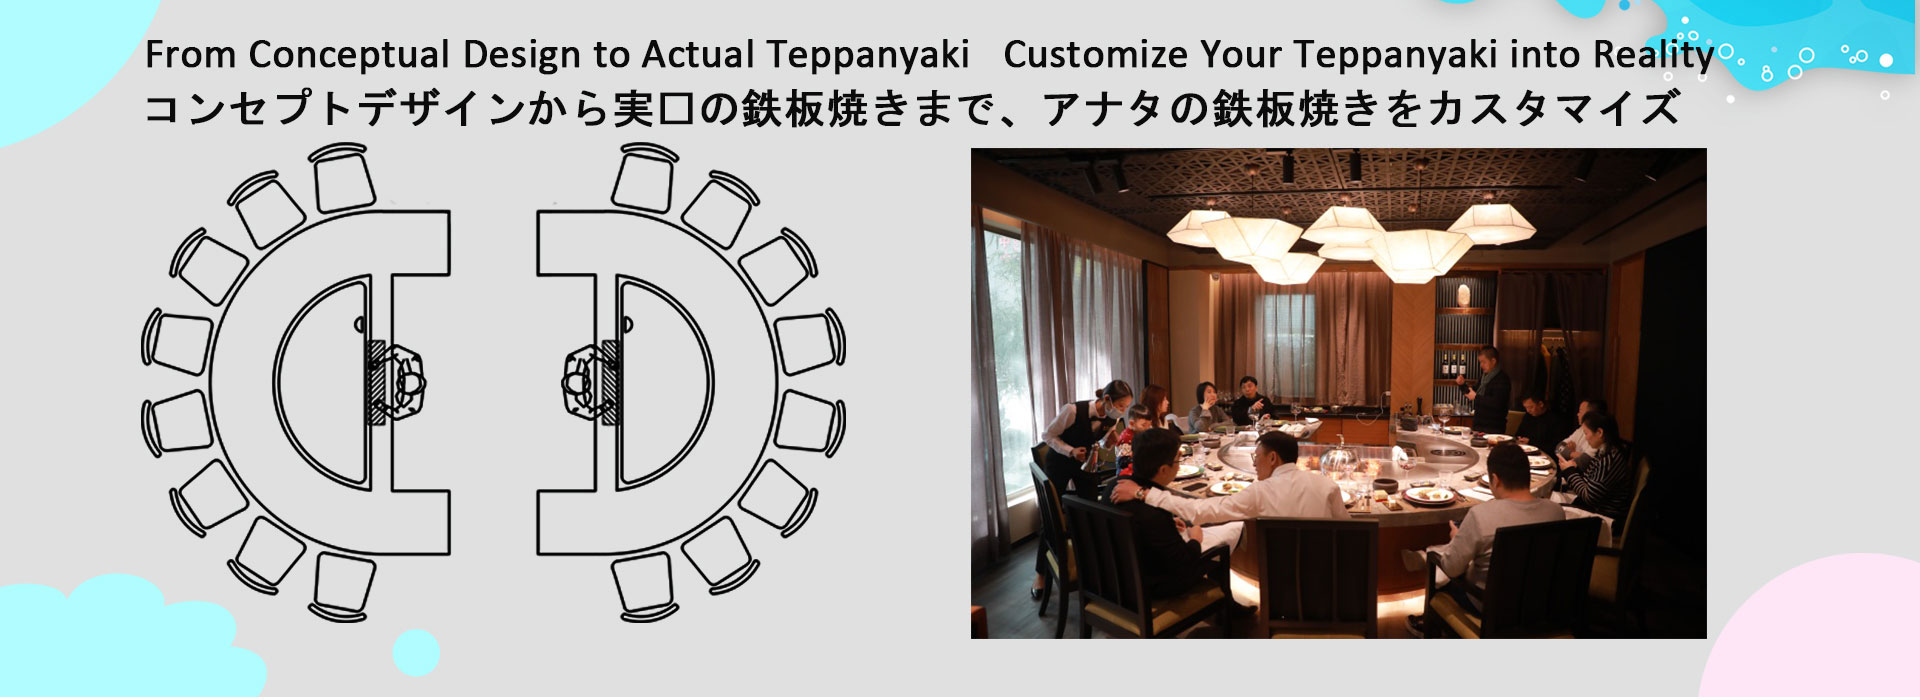 Commercial Teppanyaki Equipment For Restaurant